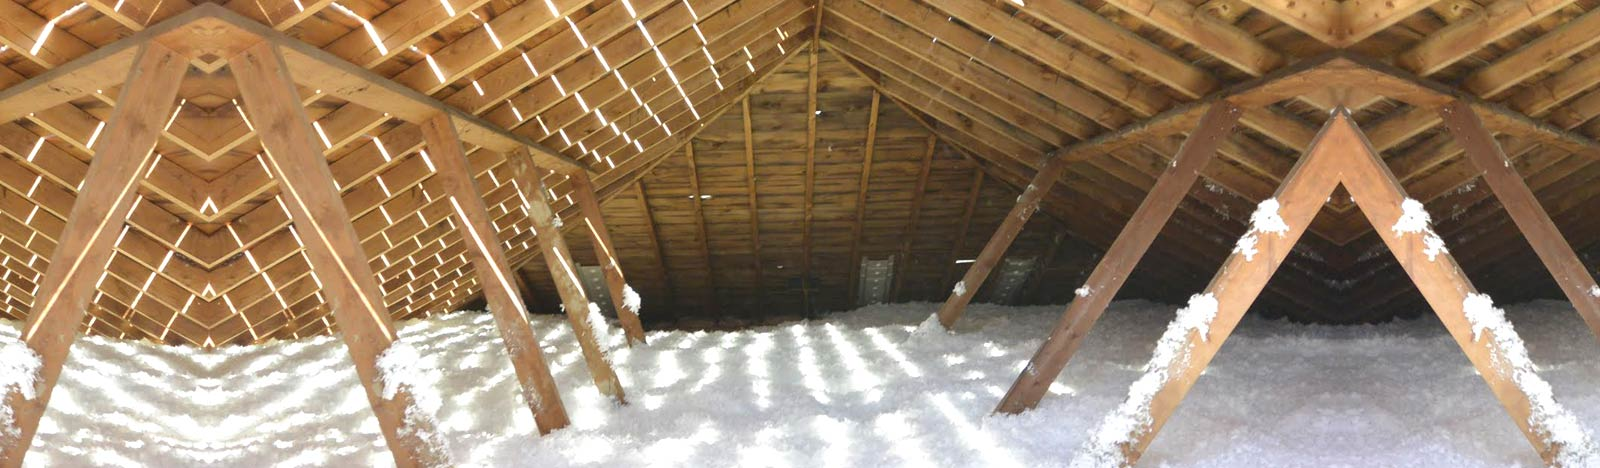 for of unlike application installation other easy blown cellulose takes method horizontal ceiling a oakville hamilton or burlington advantage types fiberglass insulation in residential